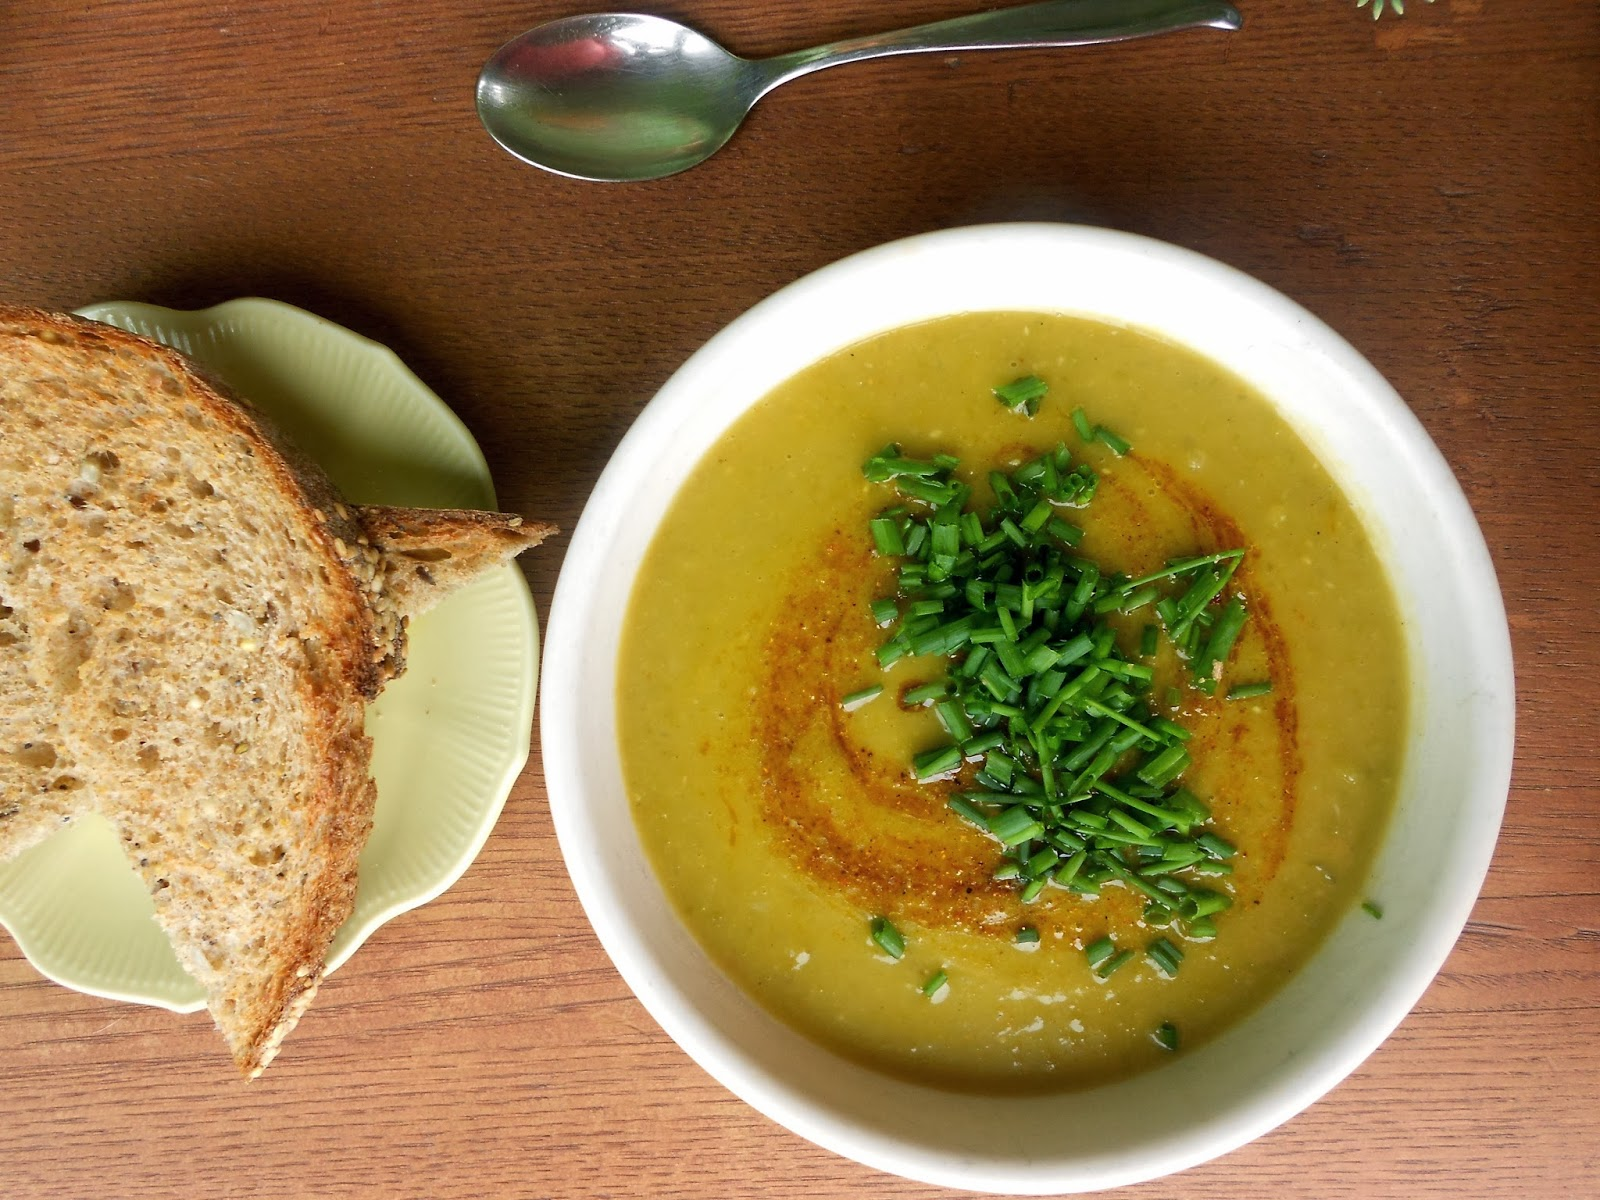 Savouring Stella: Curried Green Lentil Soup with Browned Butter